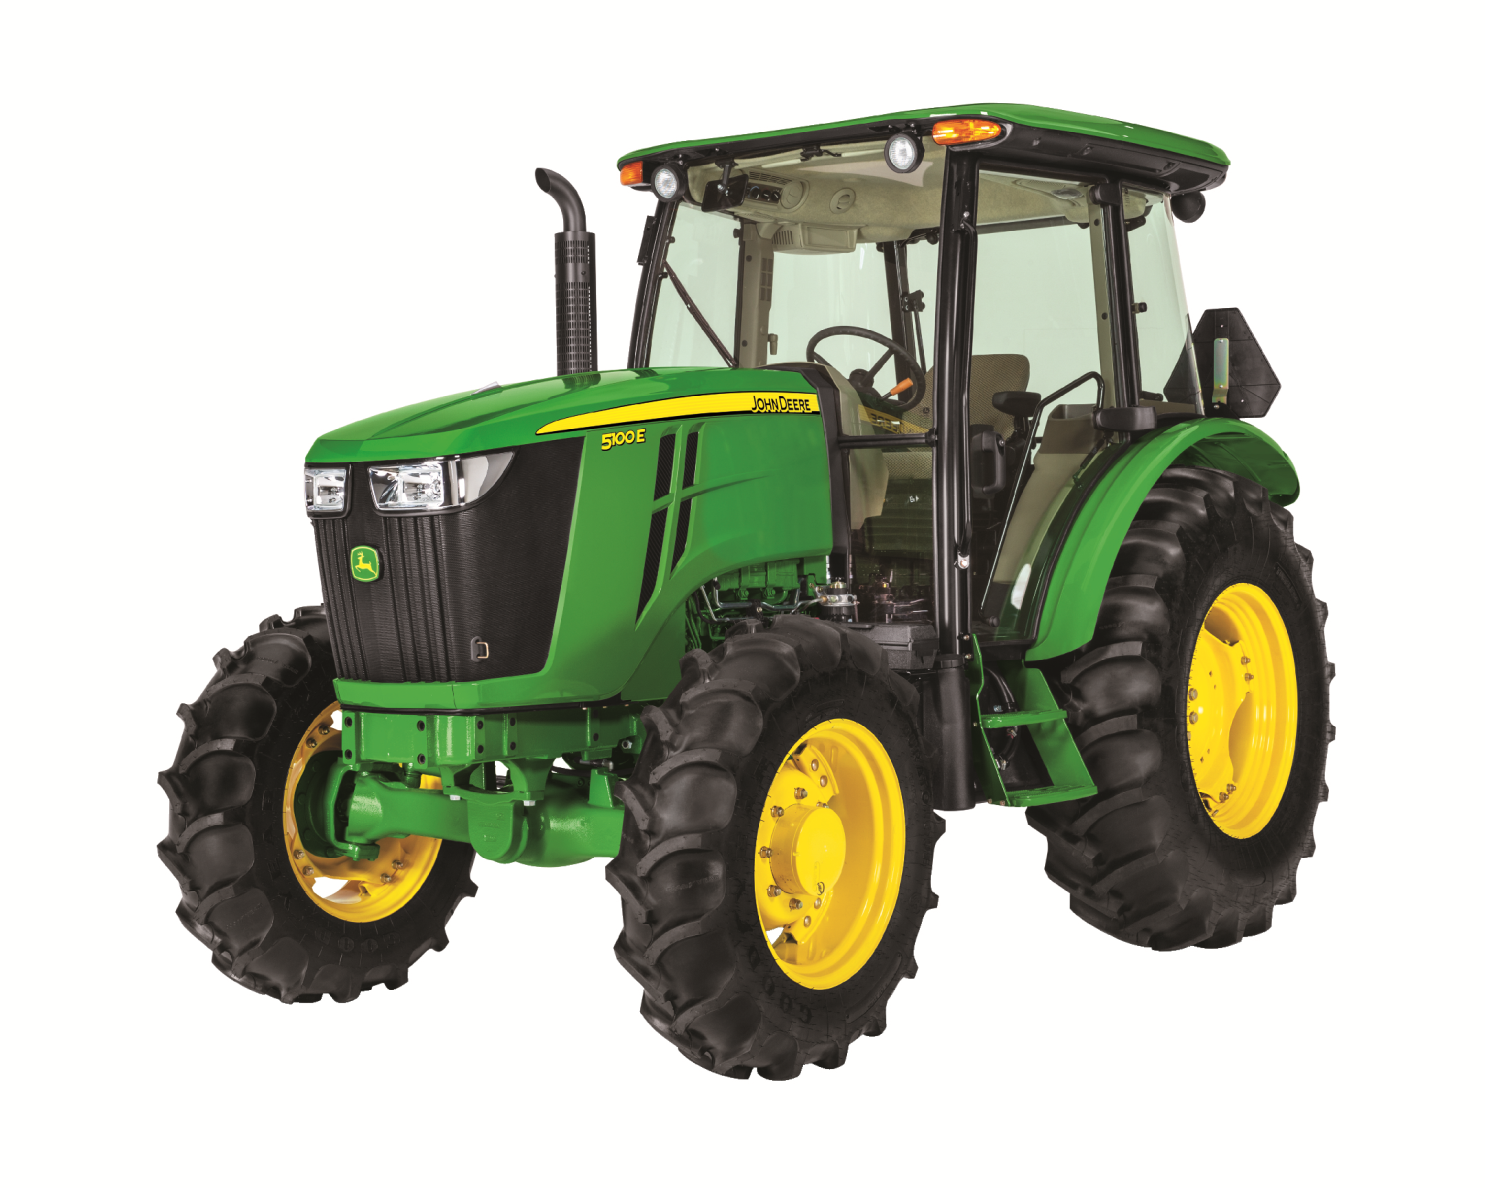 0% APR for 60 Months OR get up to $3000 off on (85-100hp) John Deere 5E  Series Utility Tractors 5100E - PNG John Deere Tractor